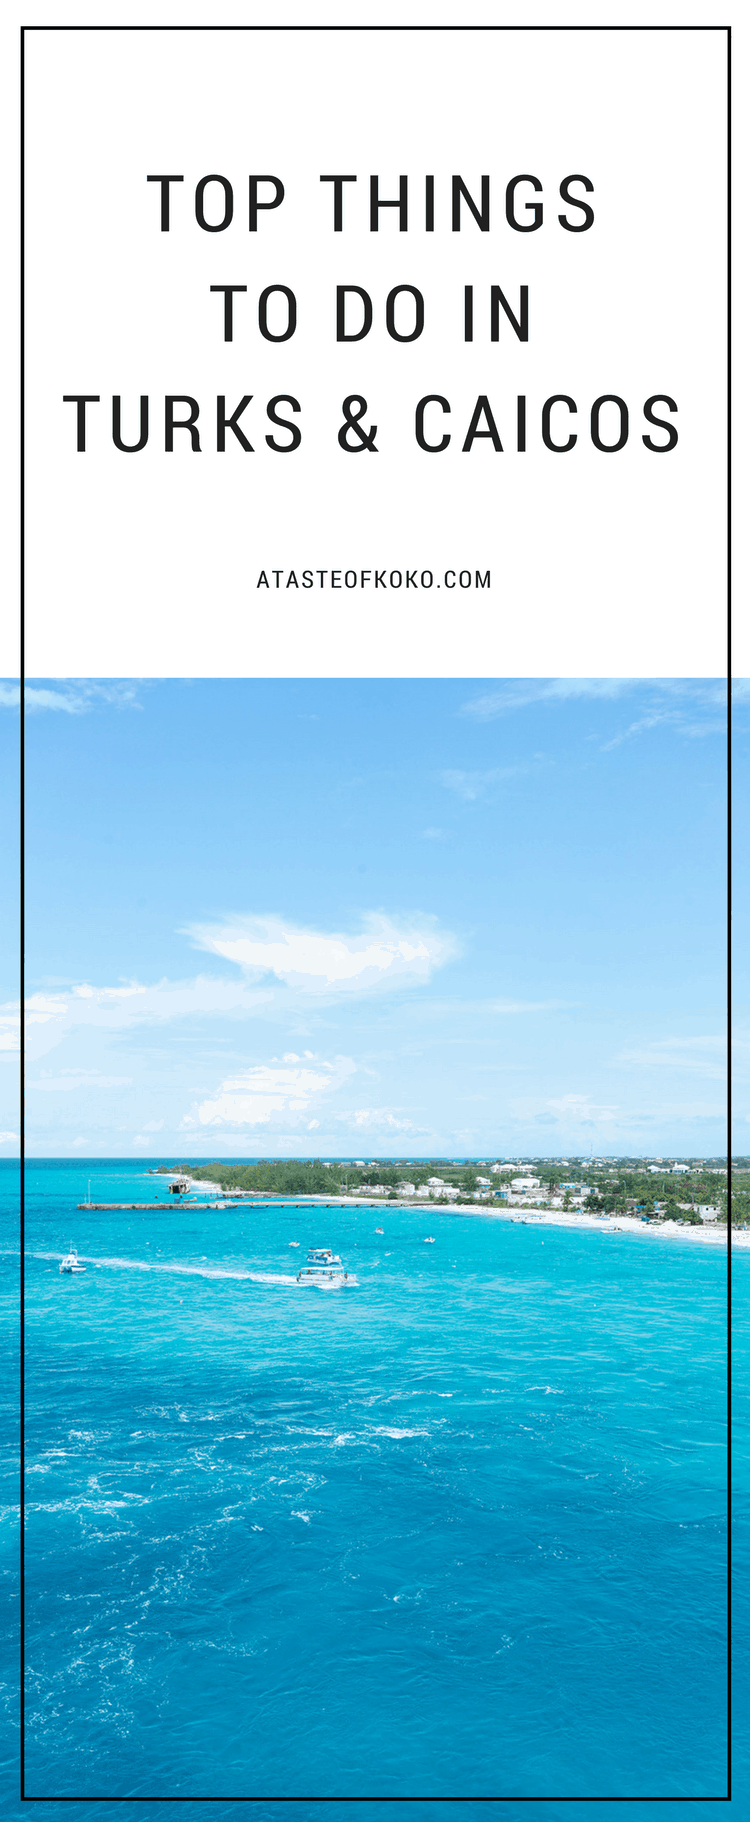 Top Things To Do In Turks & Caicos